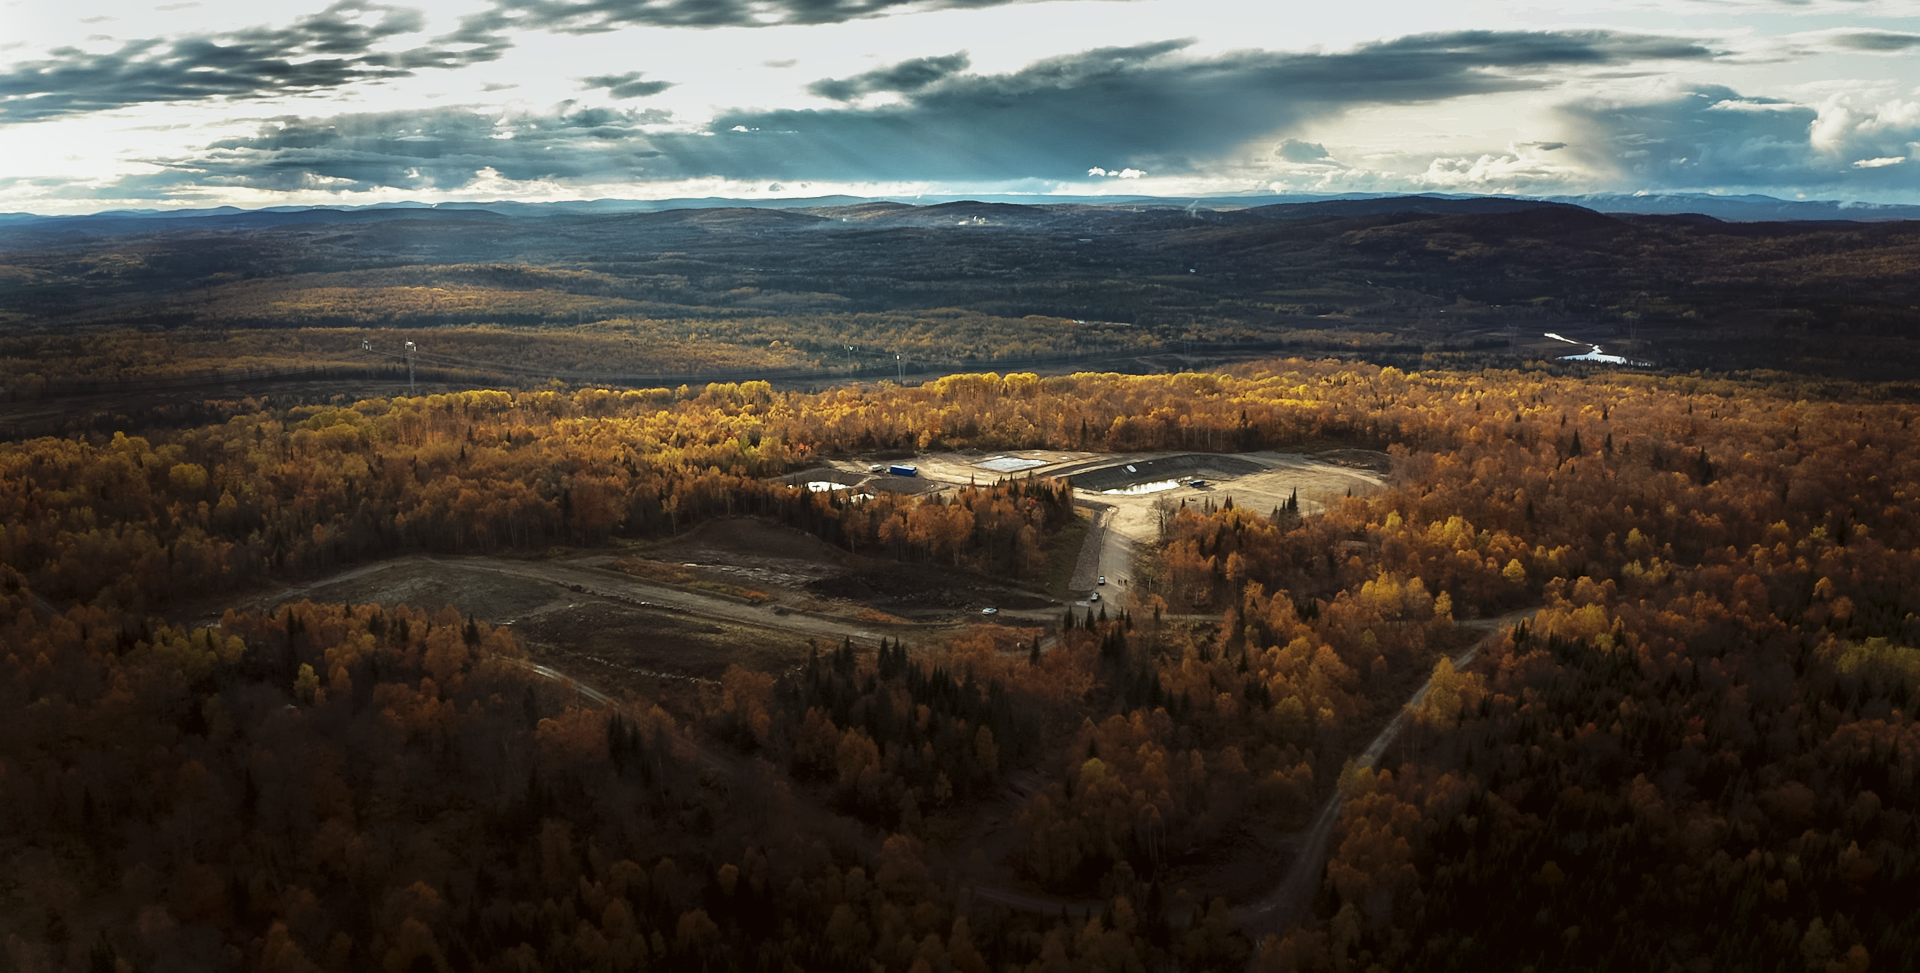 Photo of a mine seen from afar in an autumn landscape at the end of the day